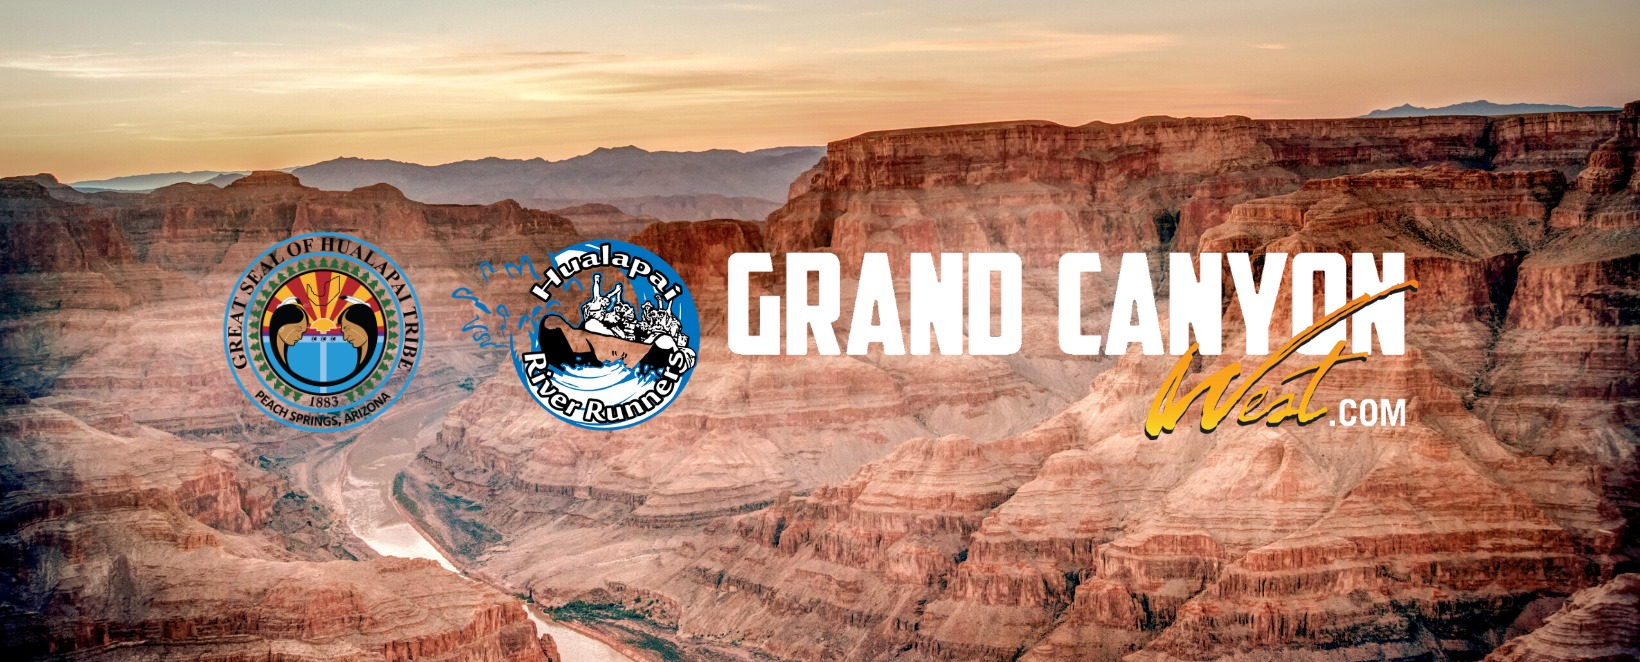 Grand Canyon Resort Corporation